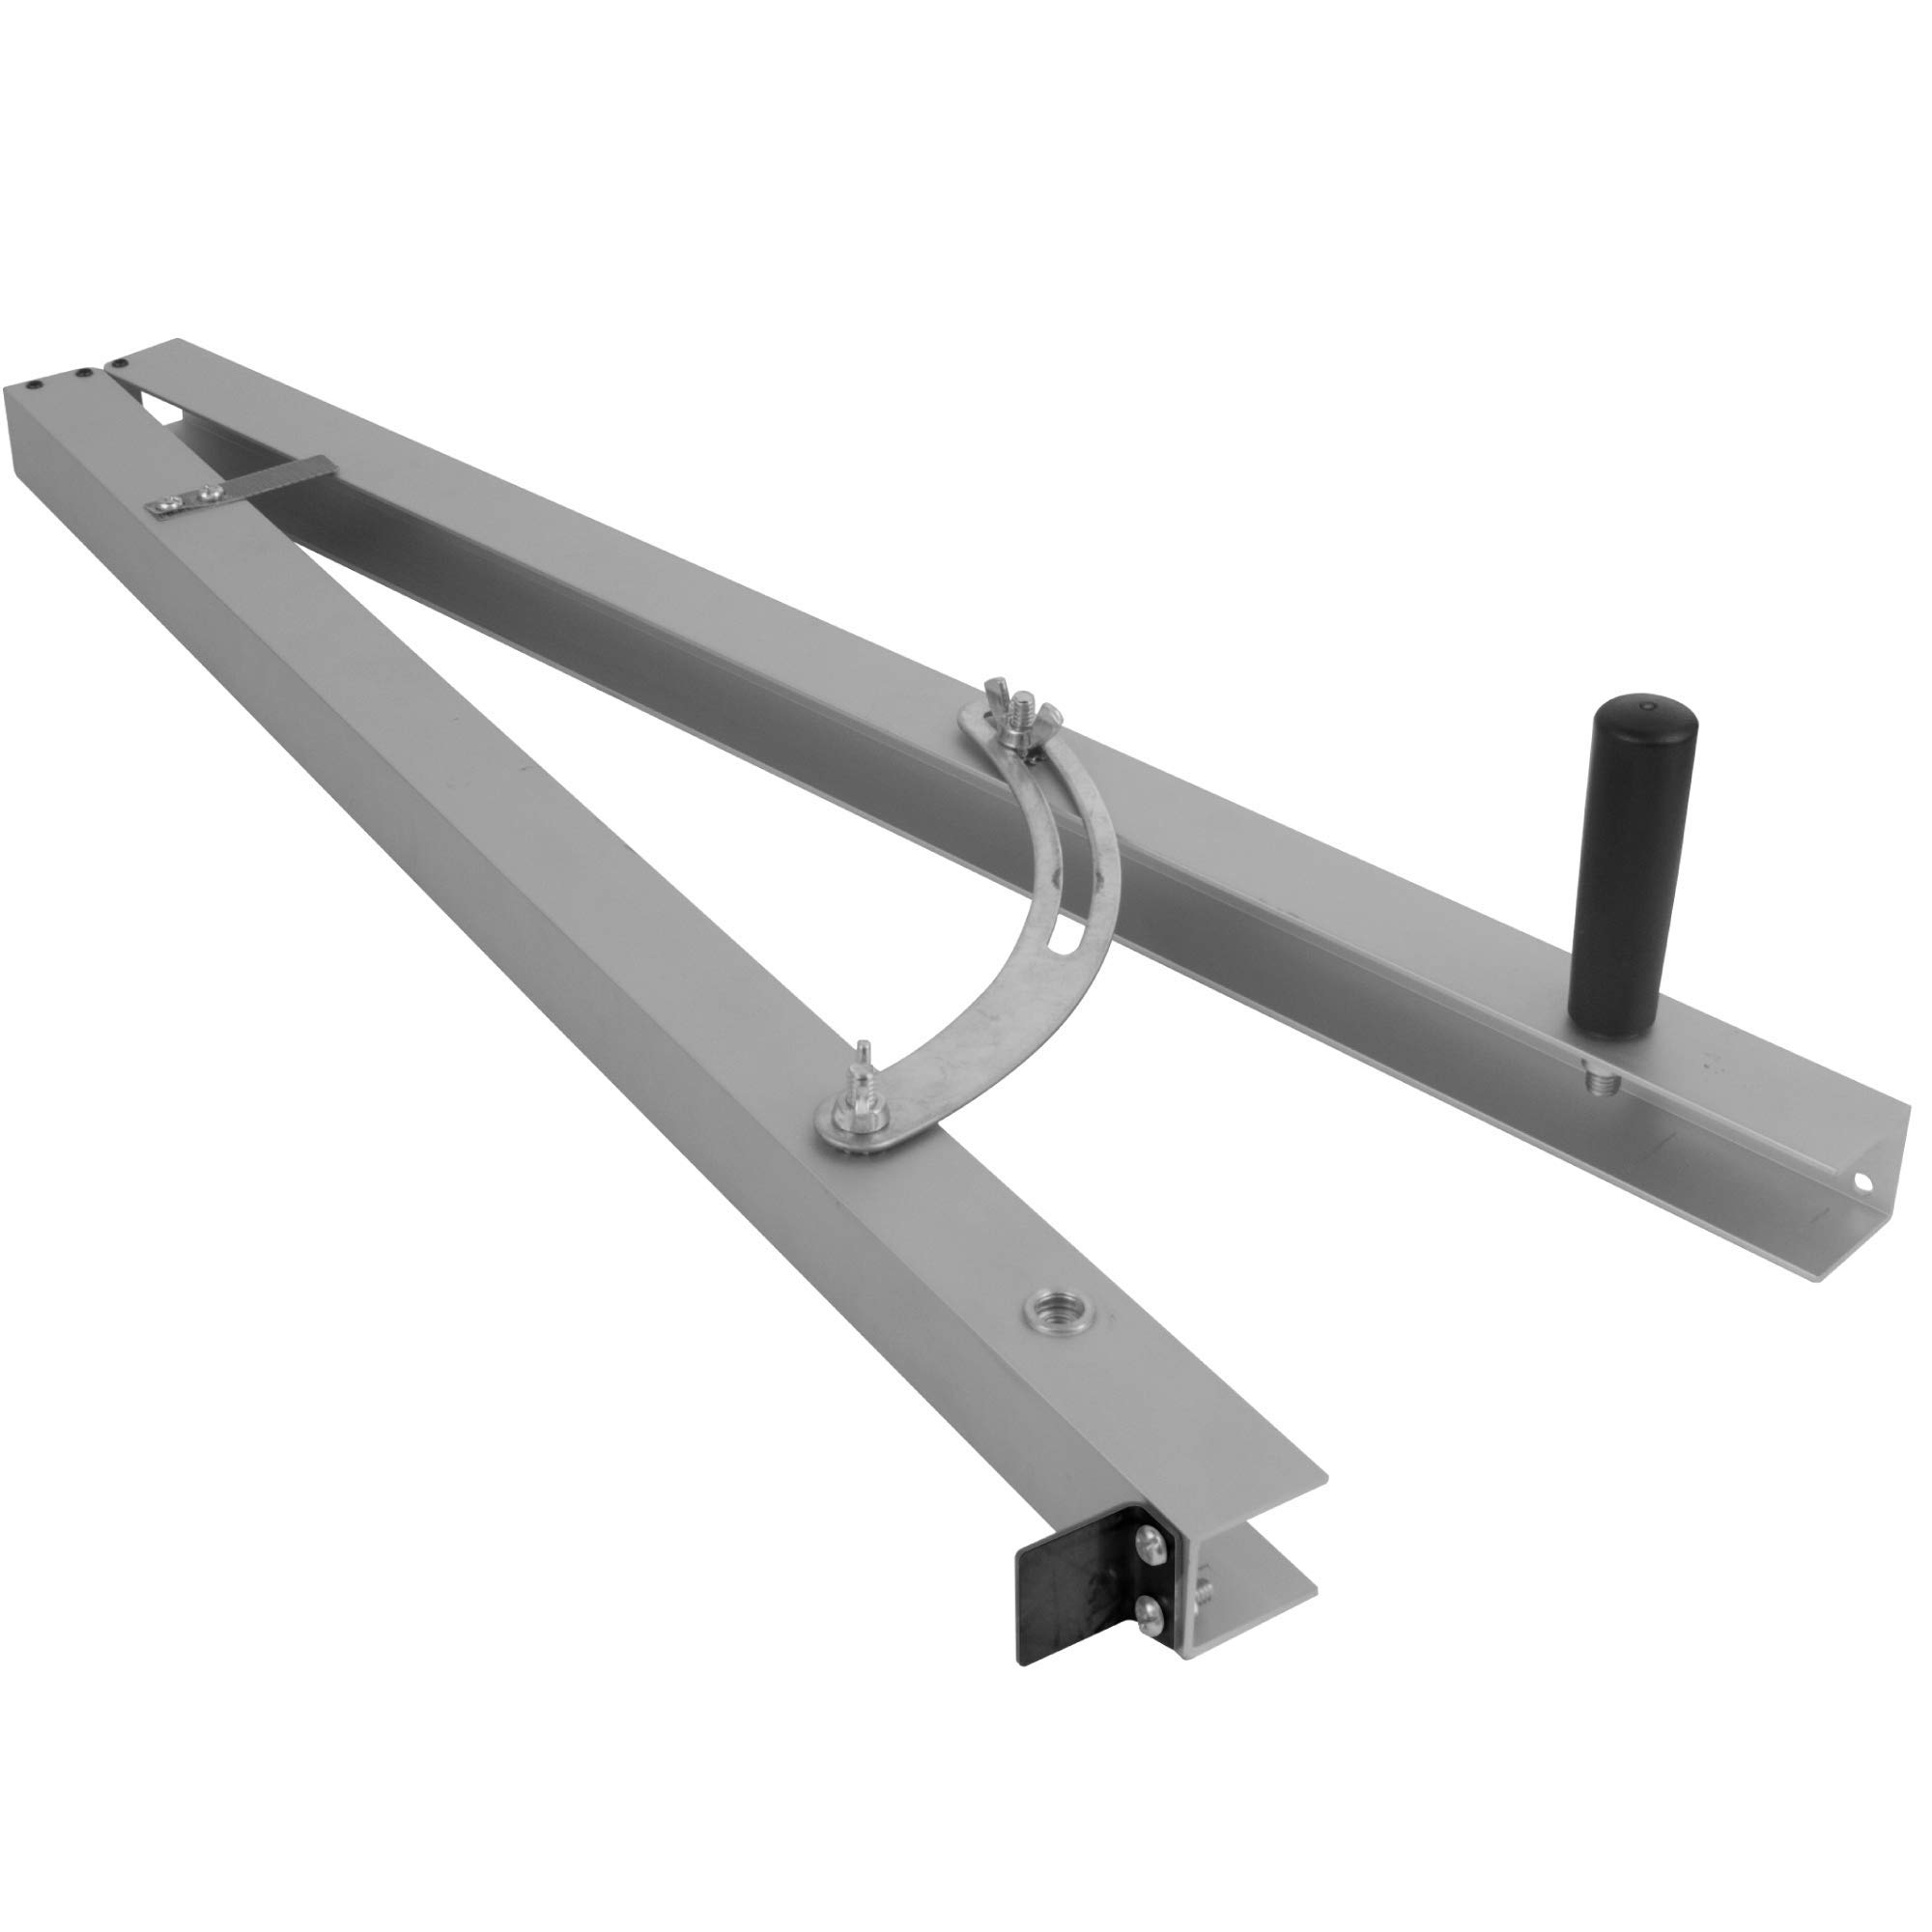 Fulton Taper Cutting Jig For Creating Tapered Angles Up to 15 Degrees on Your Table Saw 24 Inch Long Aluminum Rails with Scale and Stop